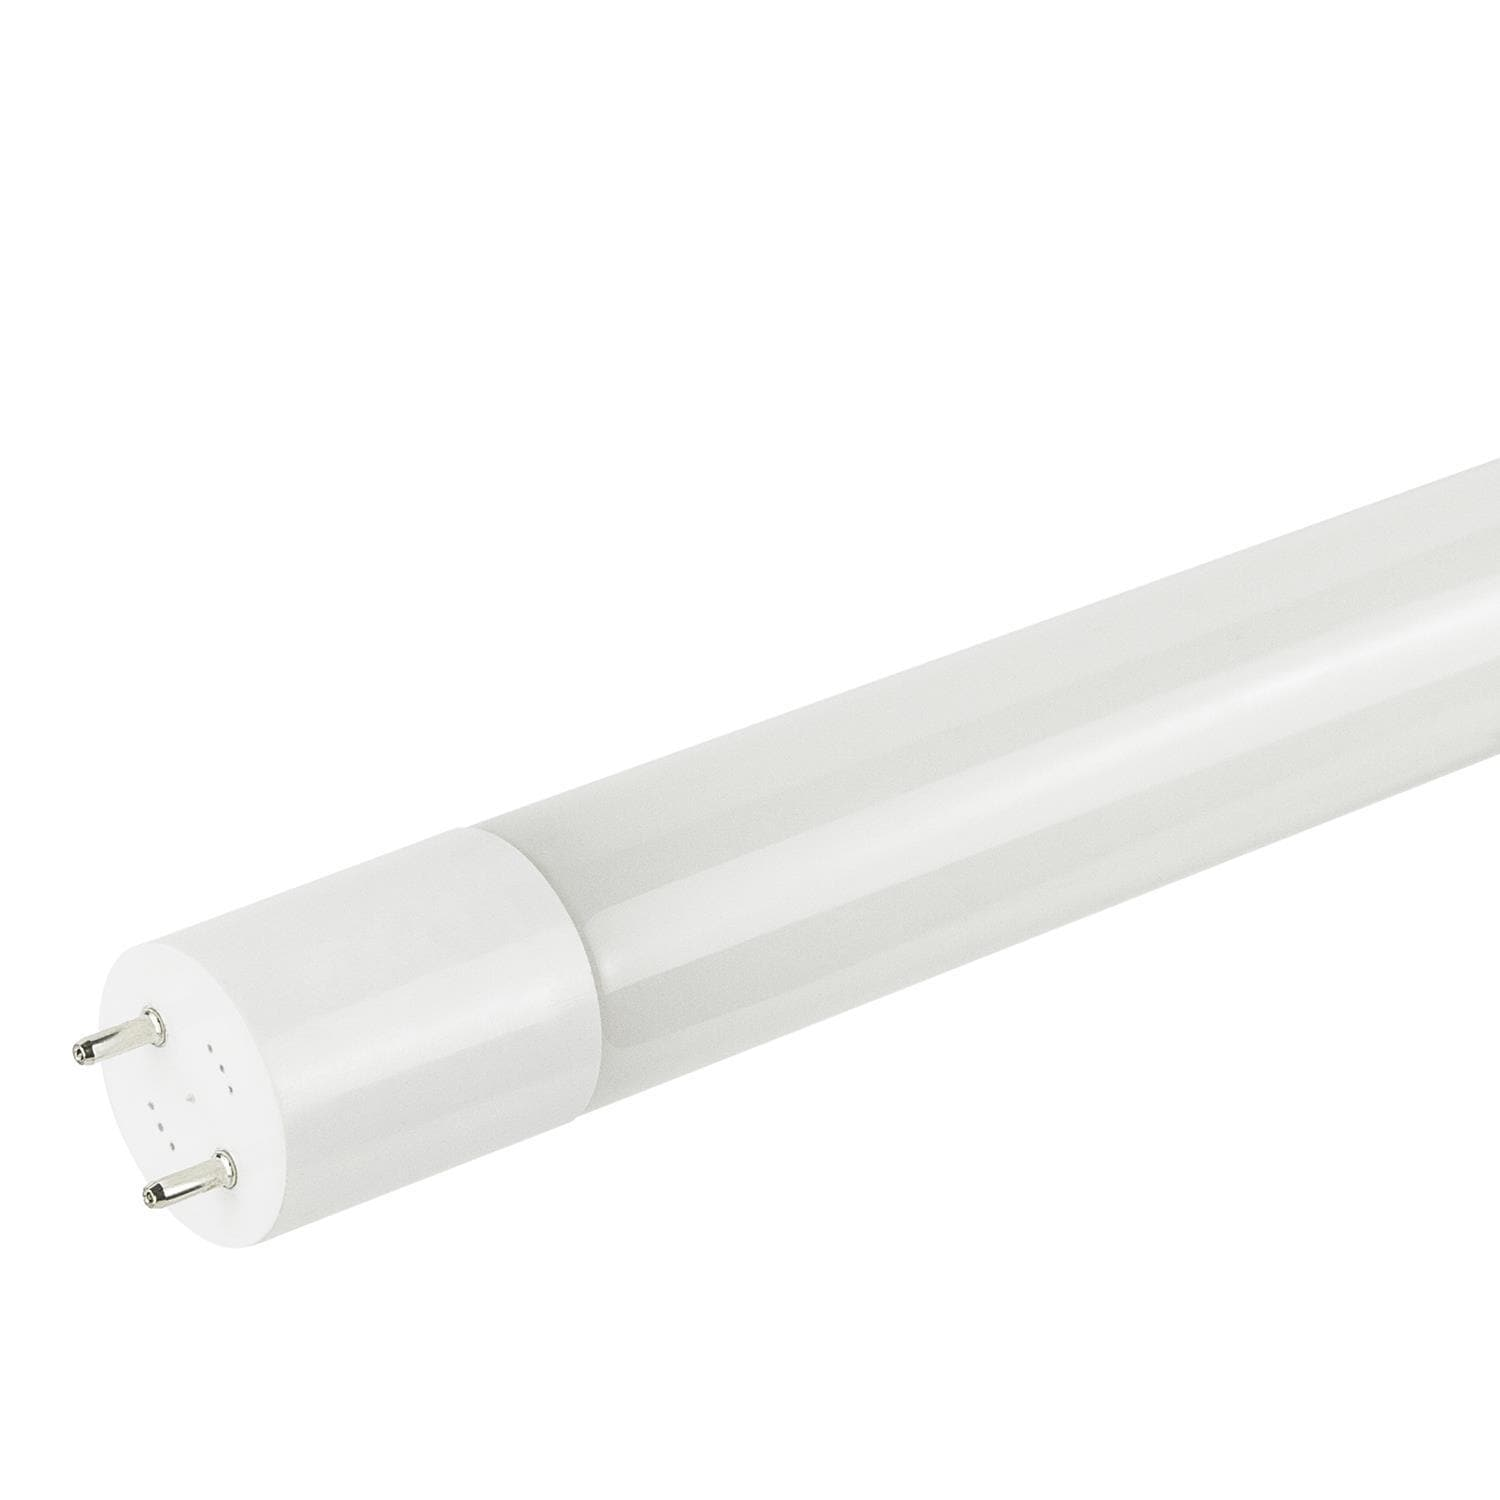 SUNLITE 15w 4 Foot Instant Start T8 LED Tube Cool White